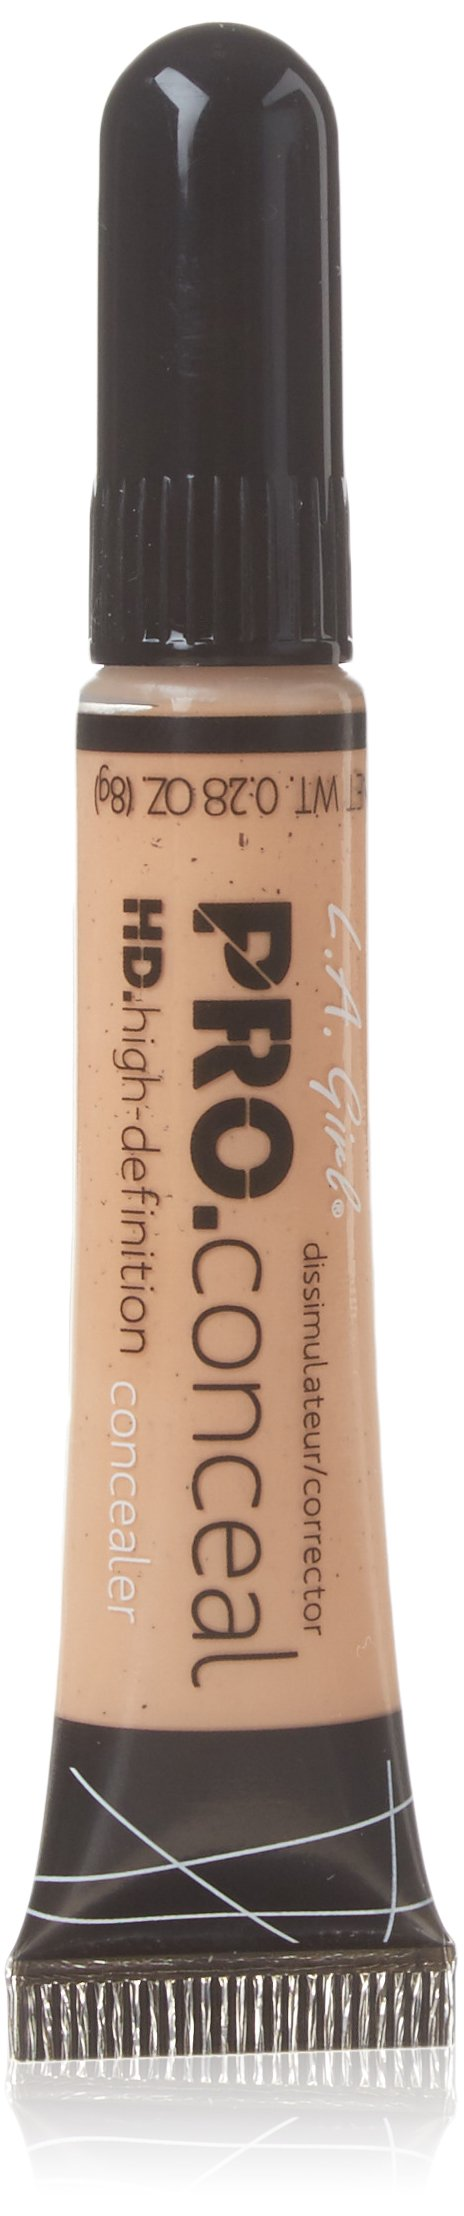 L.A. Girl Pro Conceal HD Concealer, Creamy Beige, 0.28 Ounce